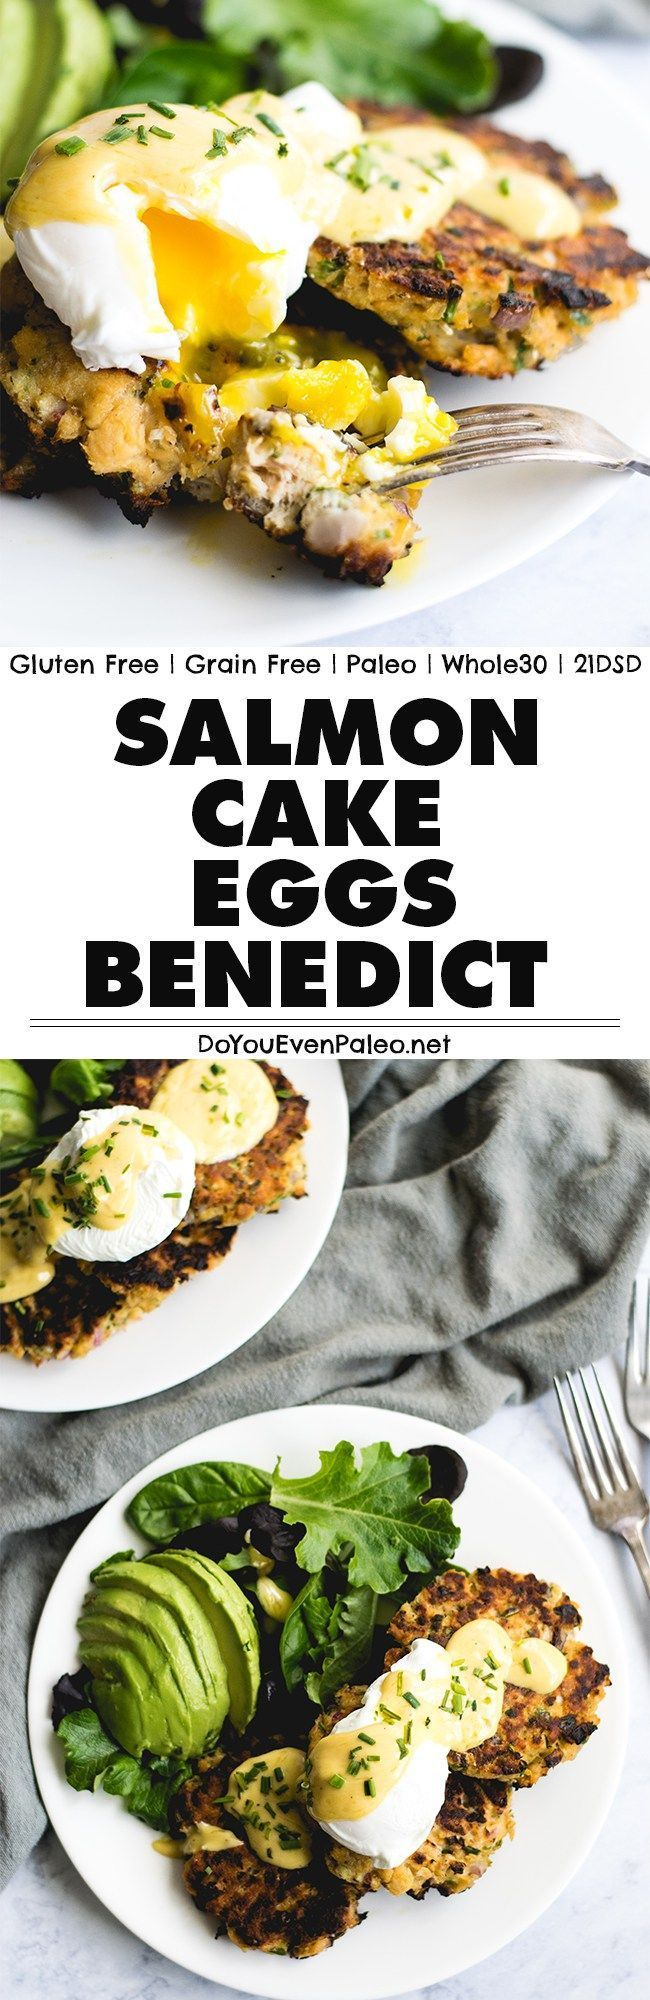 Want to take grain free salmon cakes to the next level? Top 'em with poached eggs and hollandaise. This paleo salmon cake eggs benedict will leave you drooling! | DoYouEvenPaleo.net